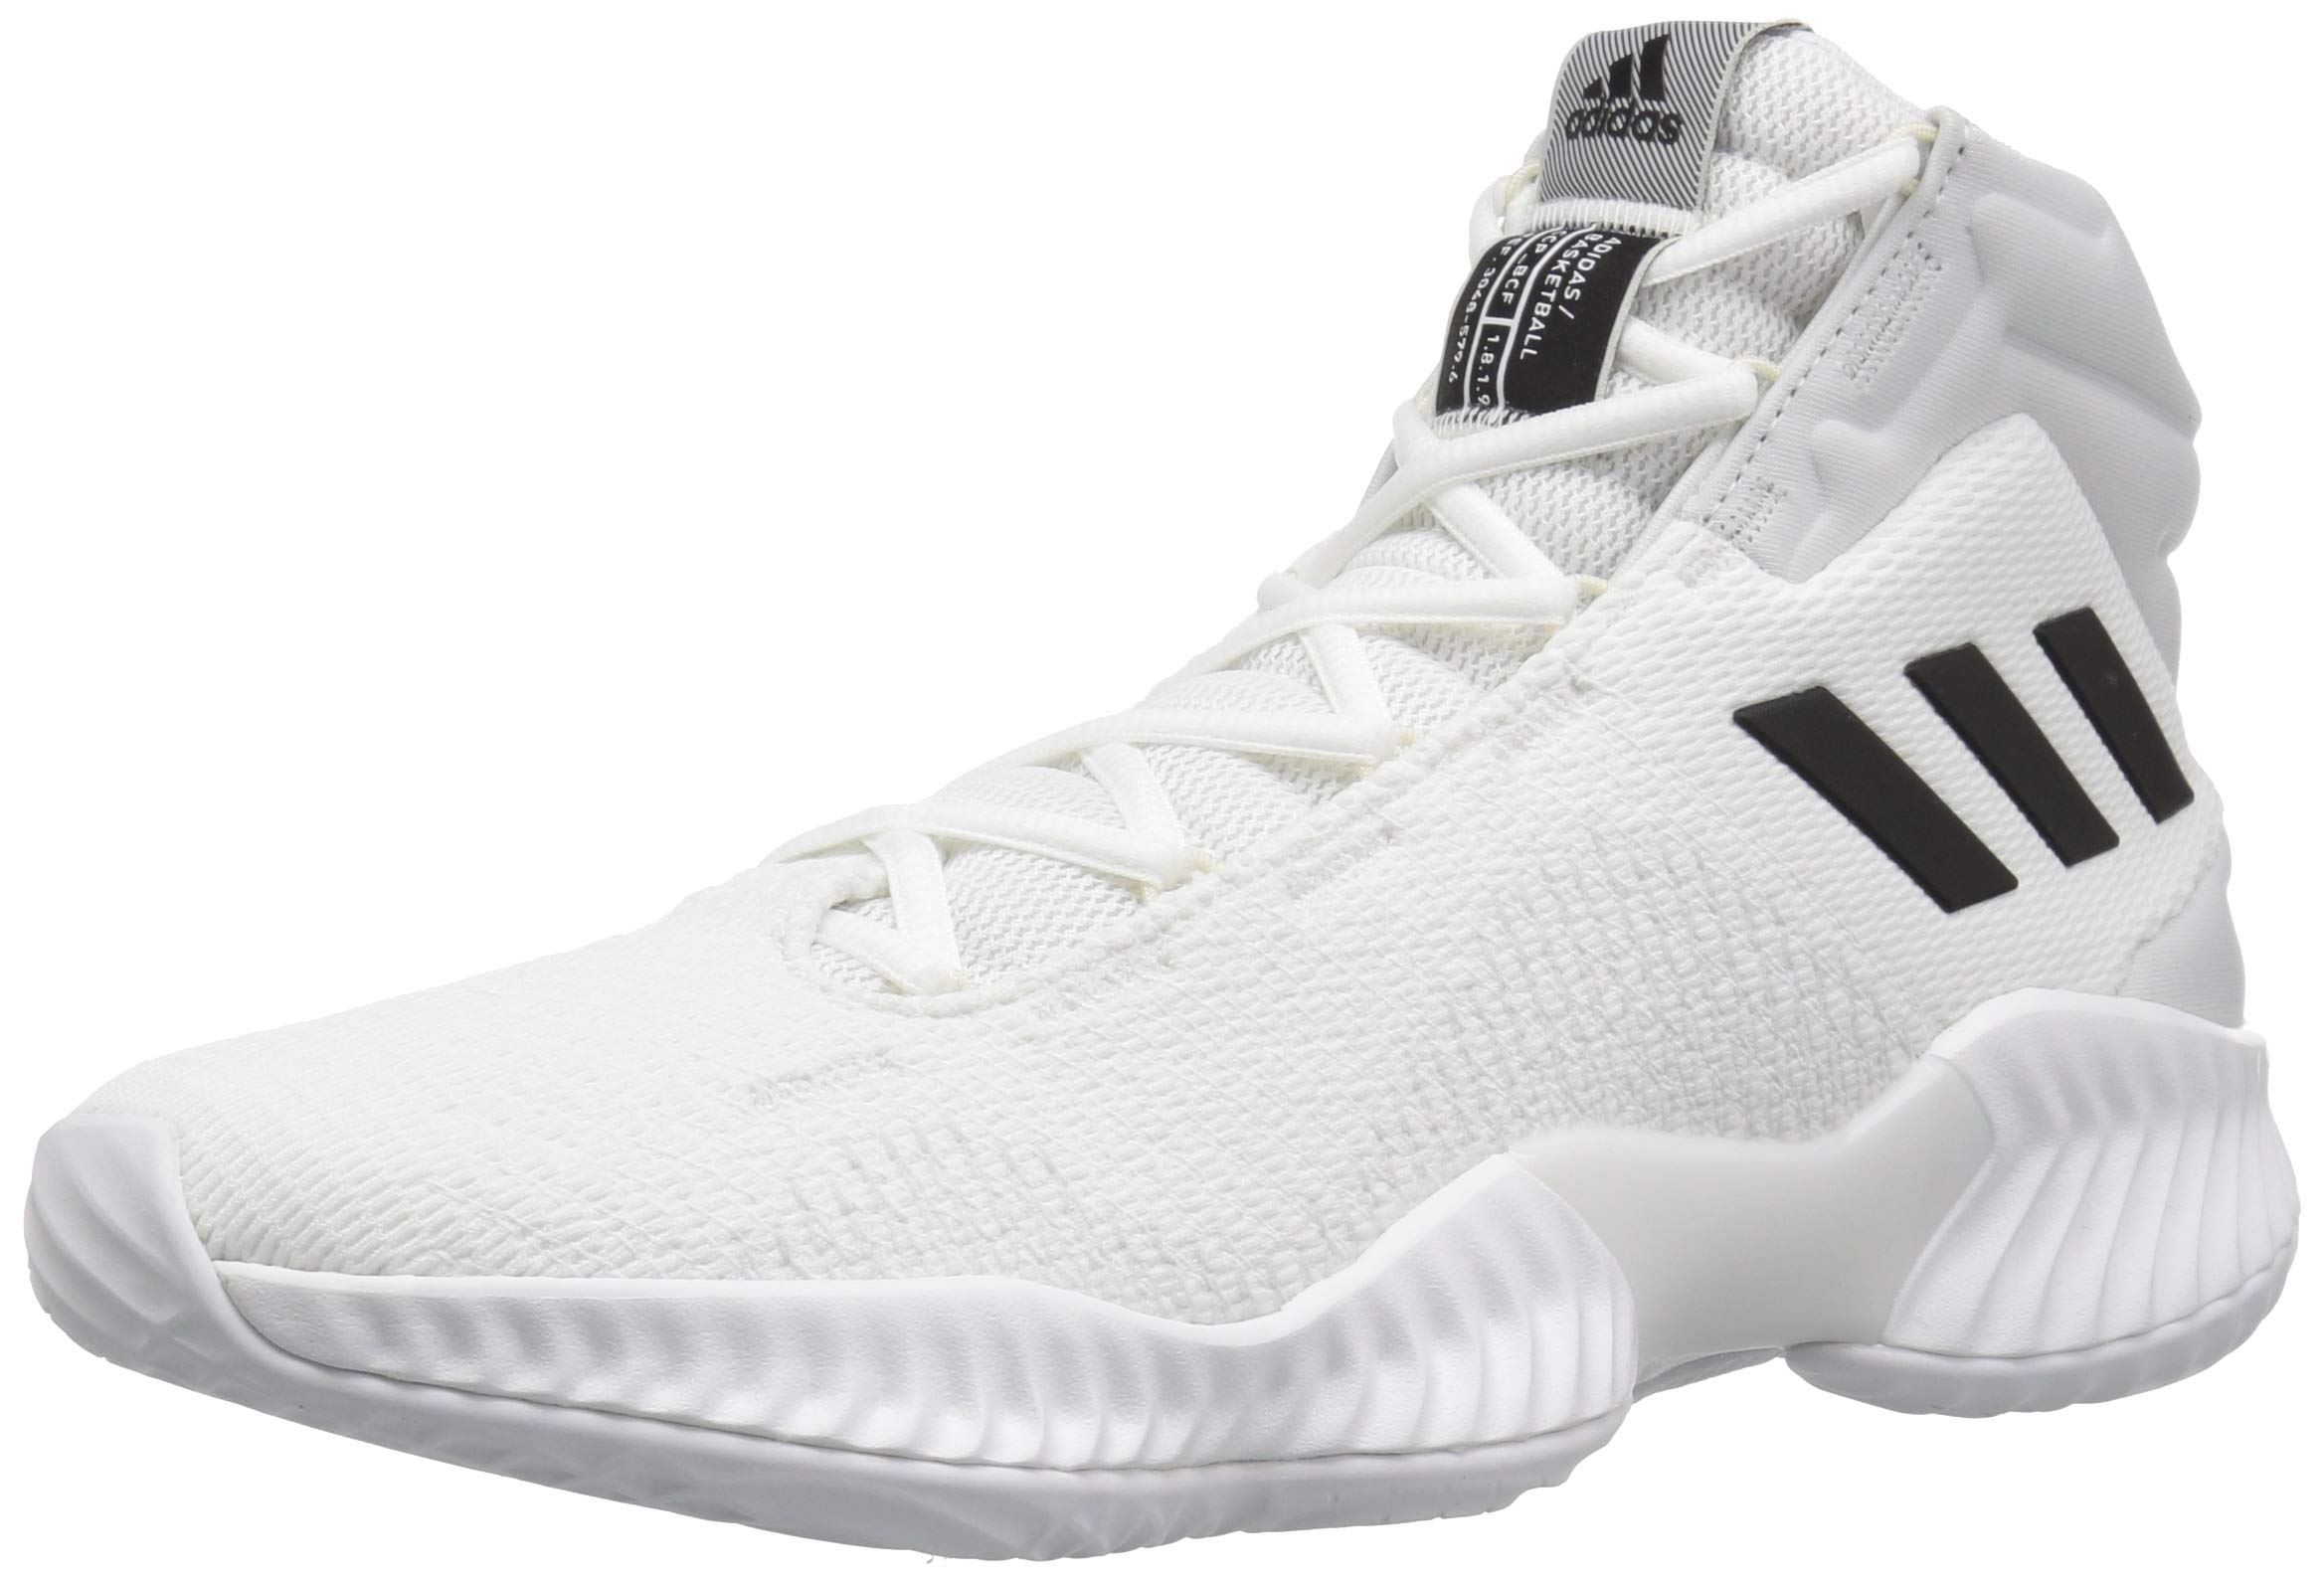 finest selection 900c4 be950 Galleon - Adidas Men s Pro Bounce 2018 Basketball Shoe Black Crystal White,  10 M US